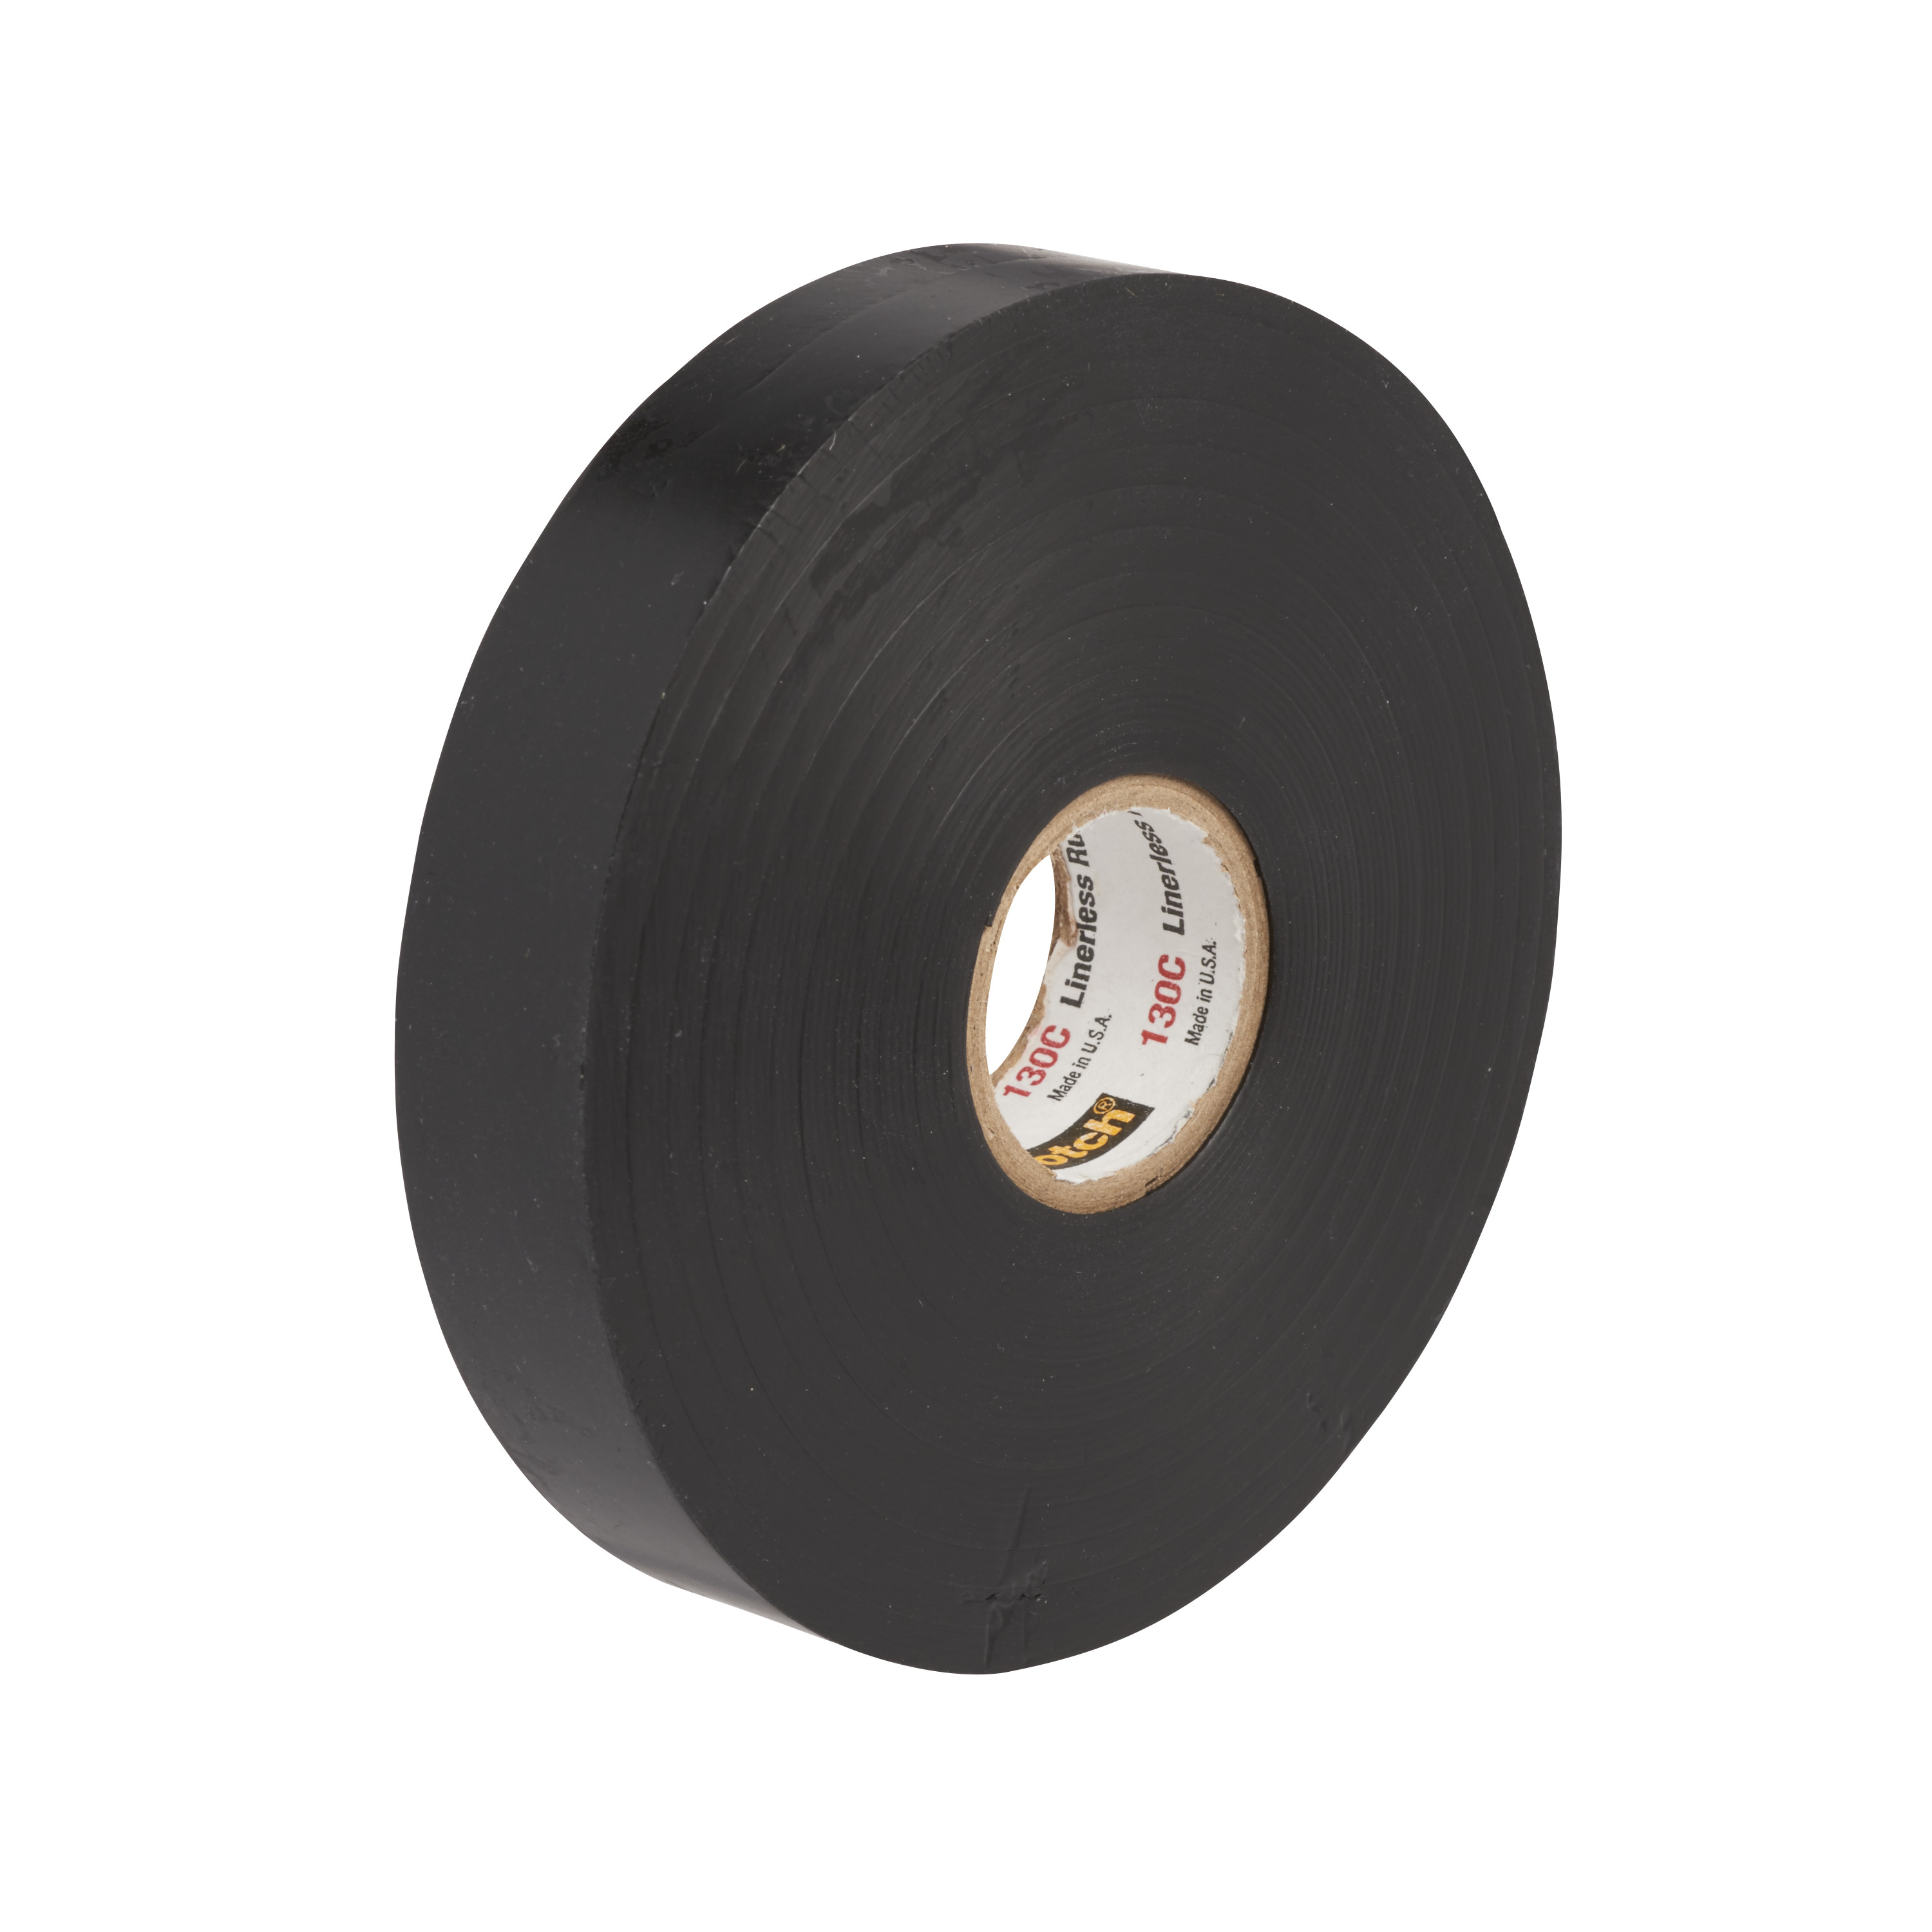 3M™ 130C-3/4X30FT Linerless Premium Grade Splicing Tape, 30 ft L x 3/4 in W, 30 mil THK, Rubber, Rubber Resin Adhesive, Rubber Backing, Black